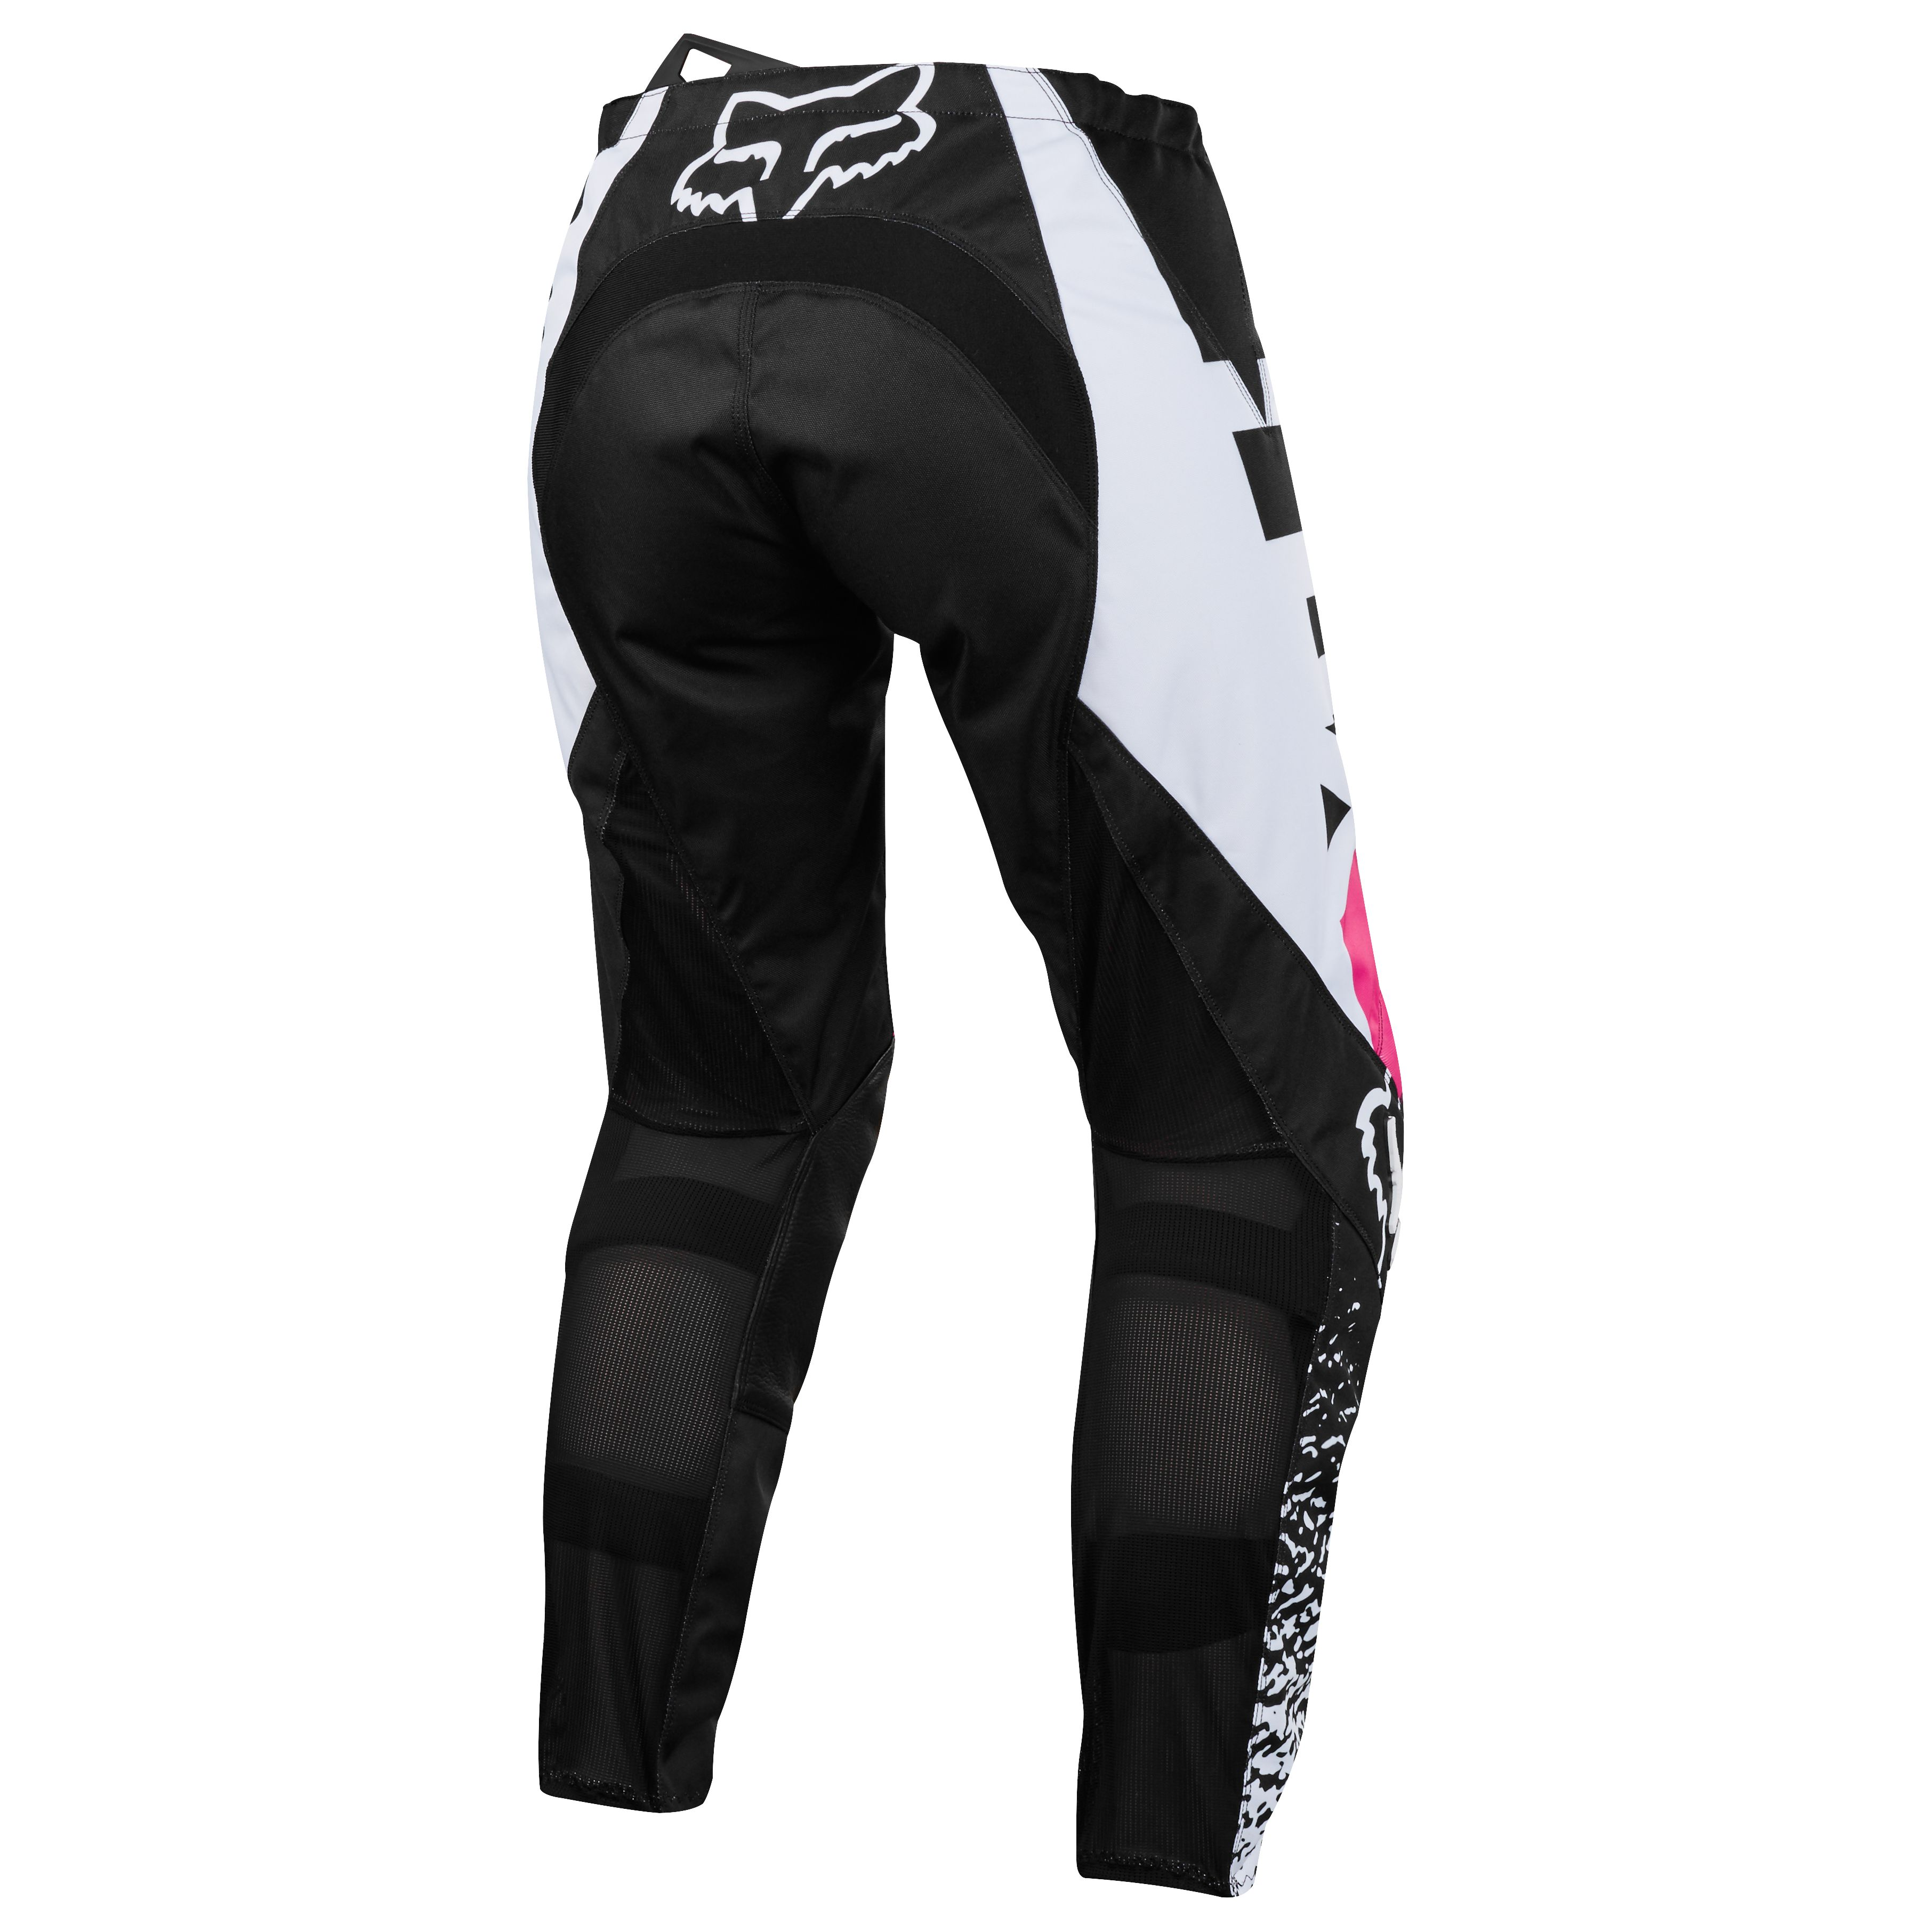 Pantalon cross Fox 180 YOUTH GIRLS - NOIR ROSE -  2018